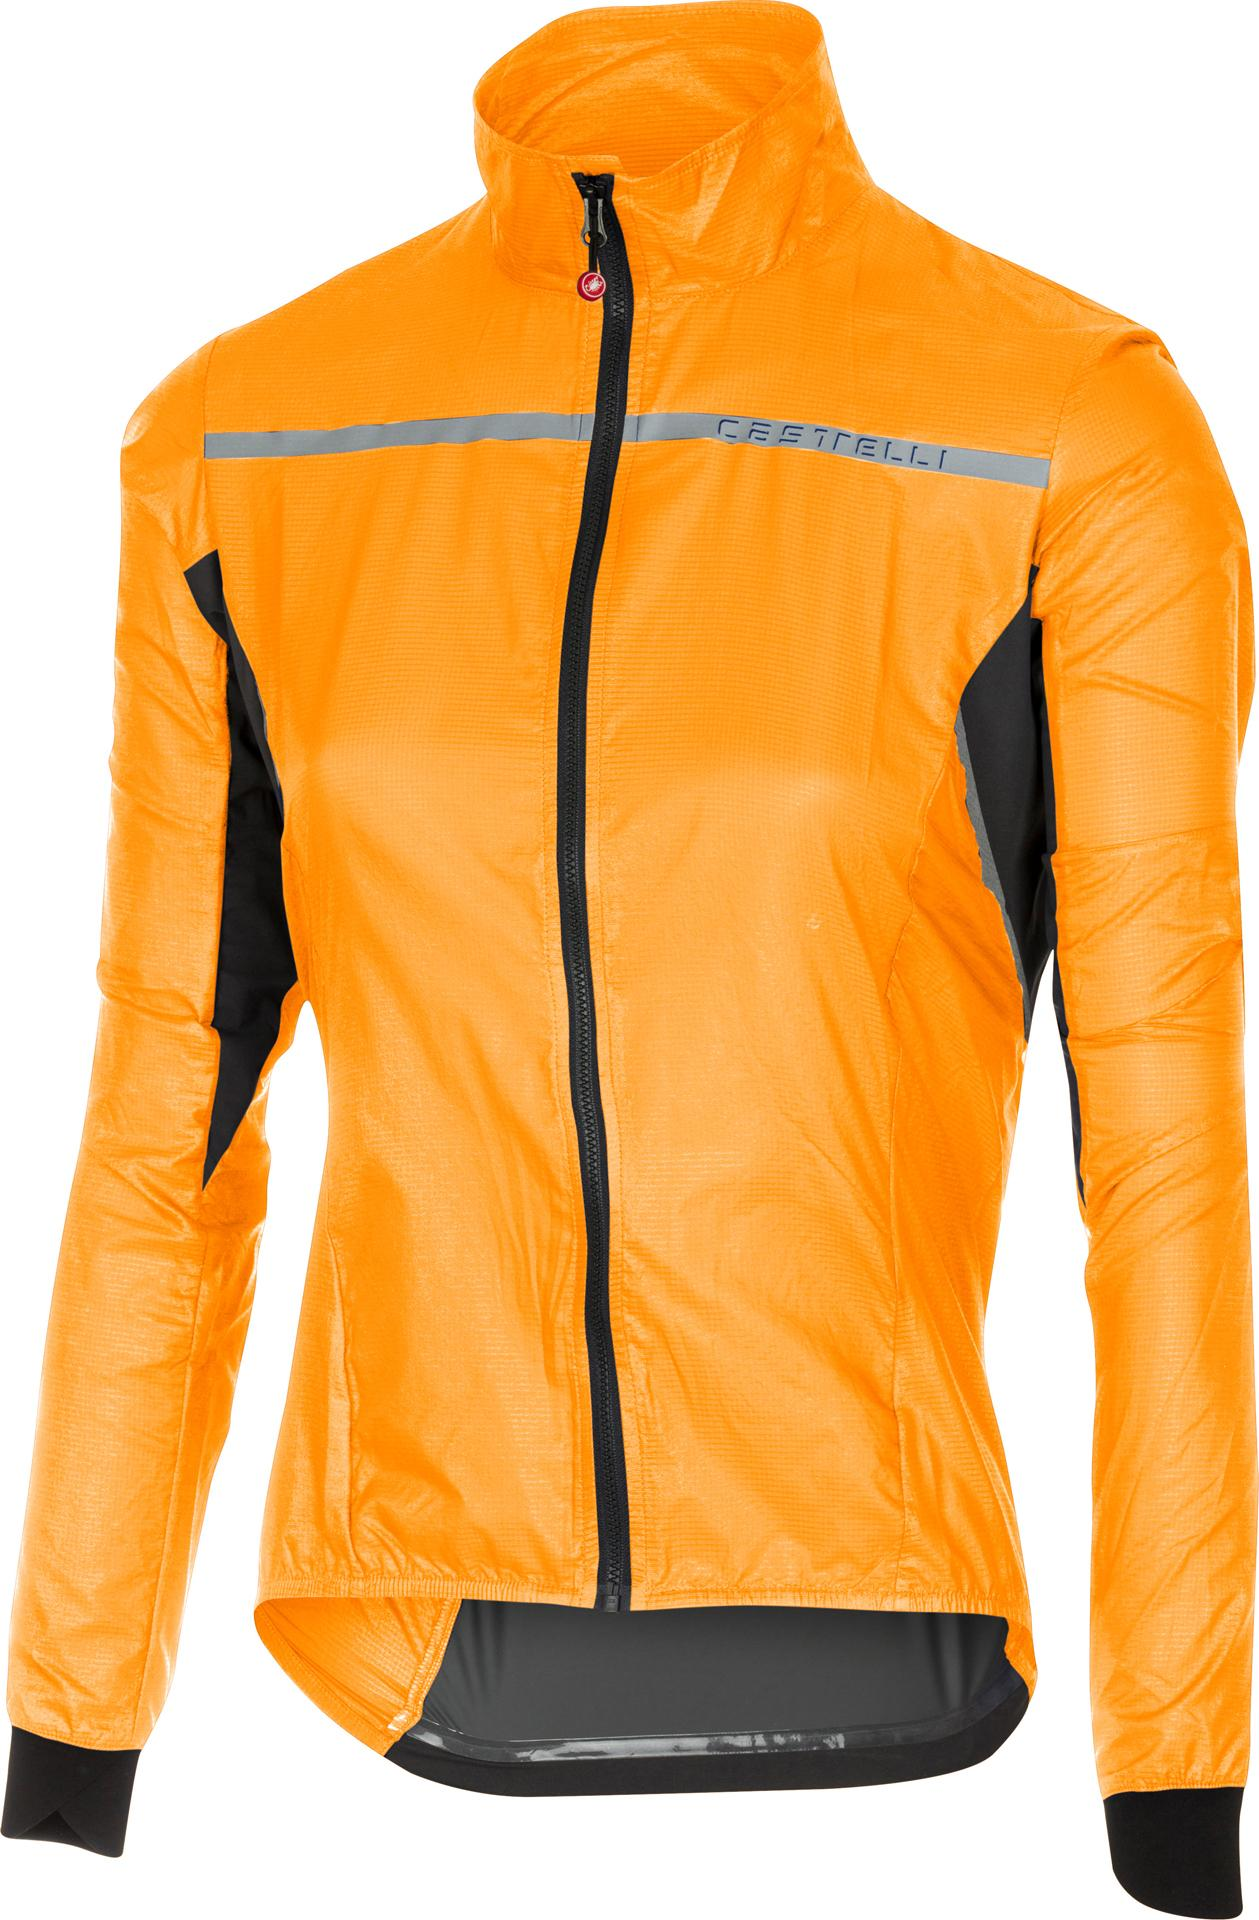 Castelli Fietsjack all weather Dames Oranje  / CA Superleggera W Jacket Orange